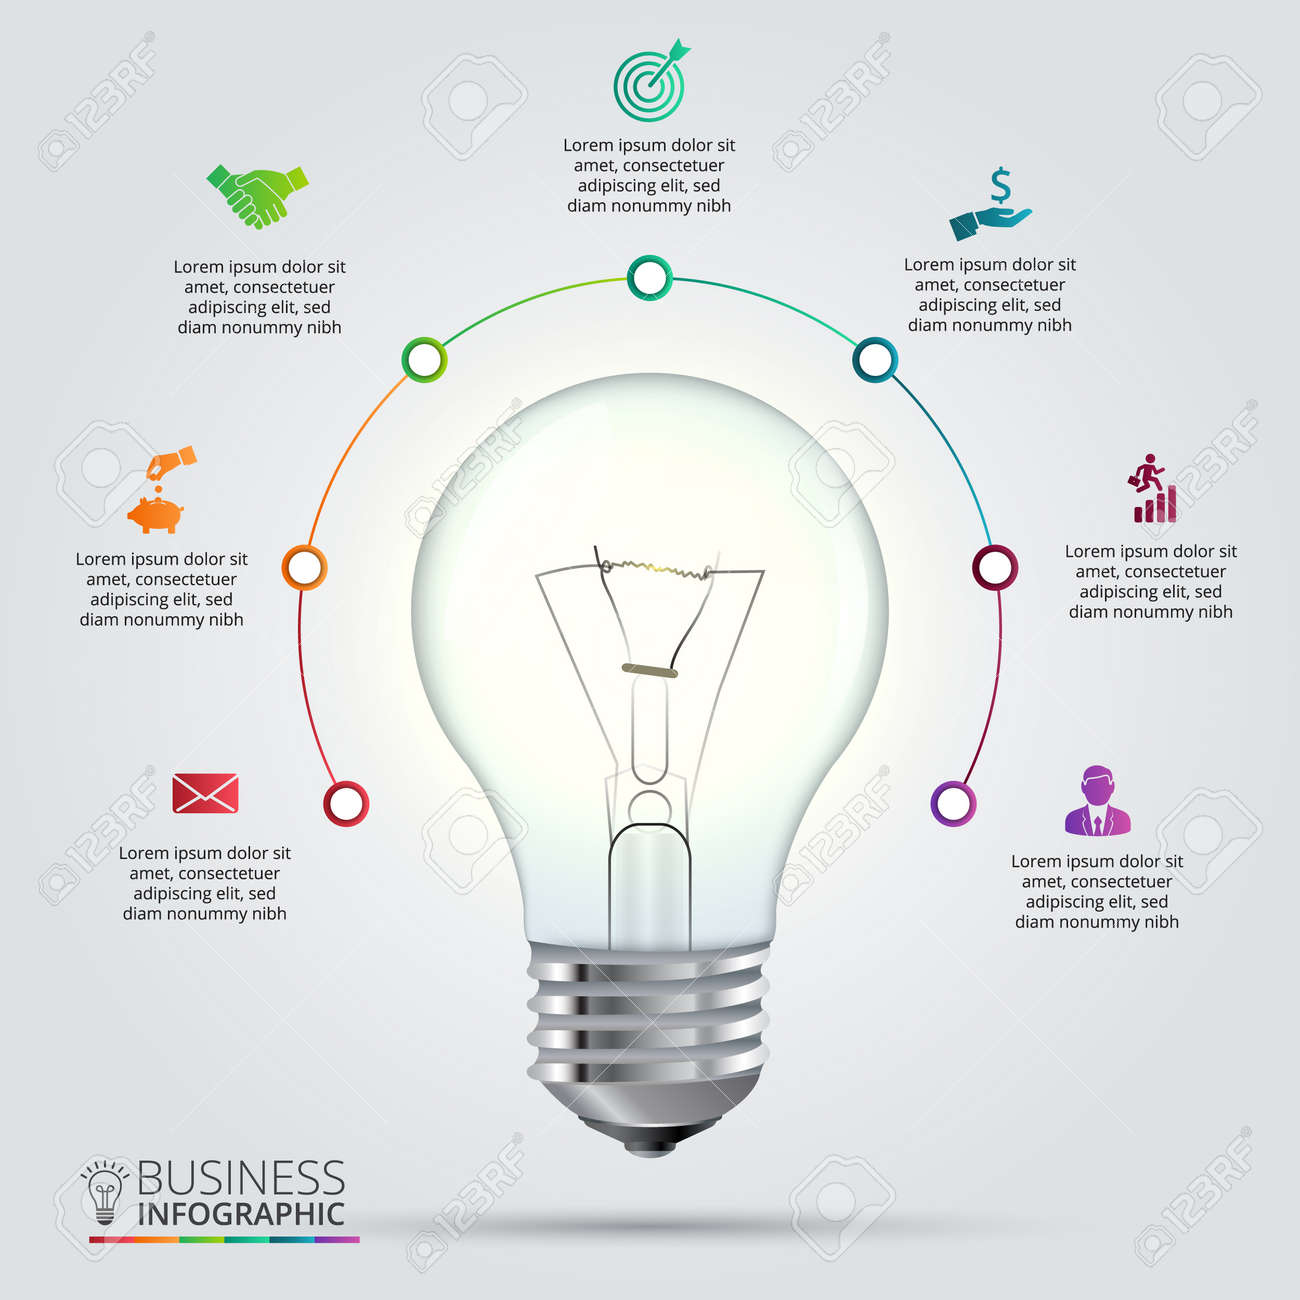 hight resolution of light bulb with circle elements for infographic template for cycling diagram graph presentation